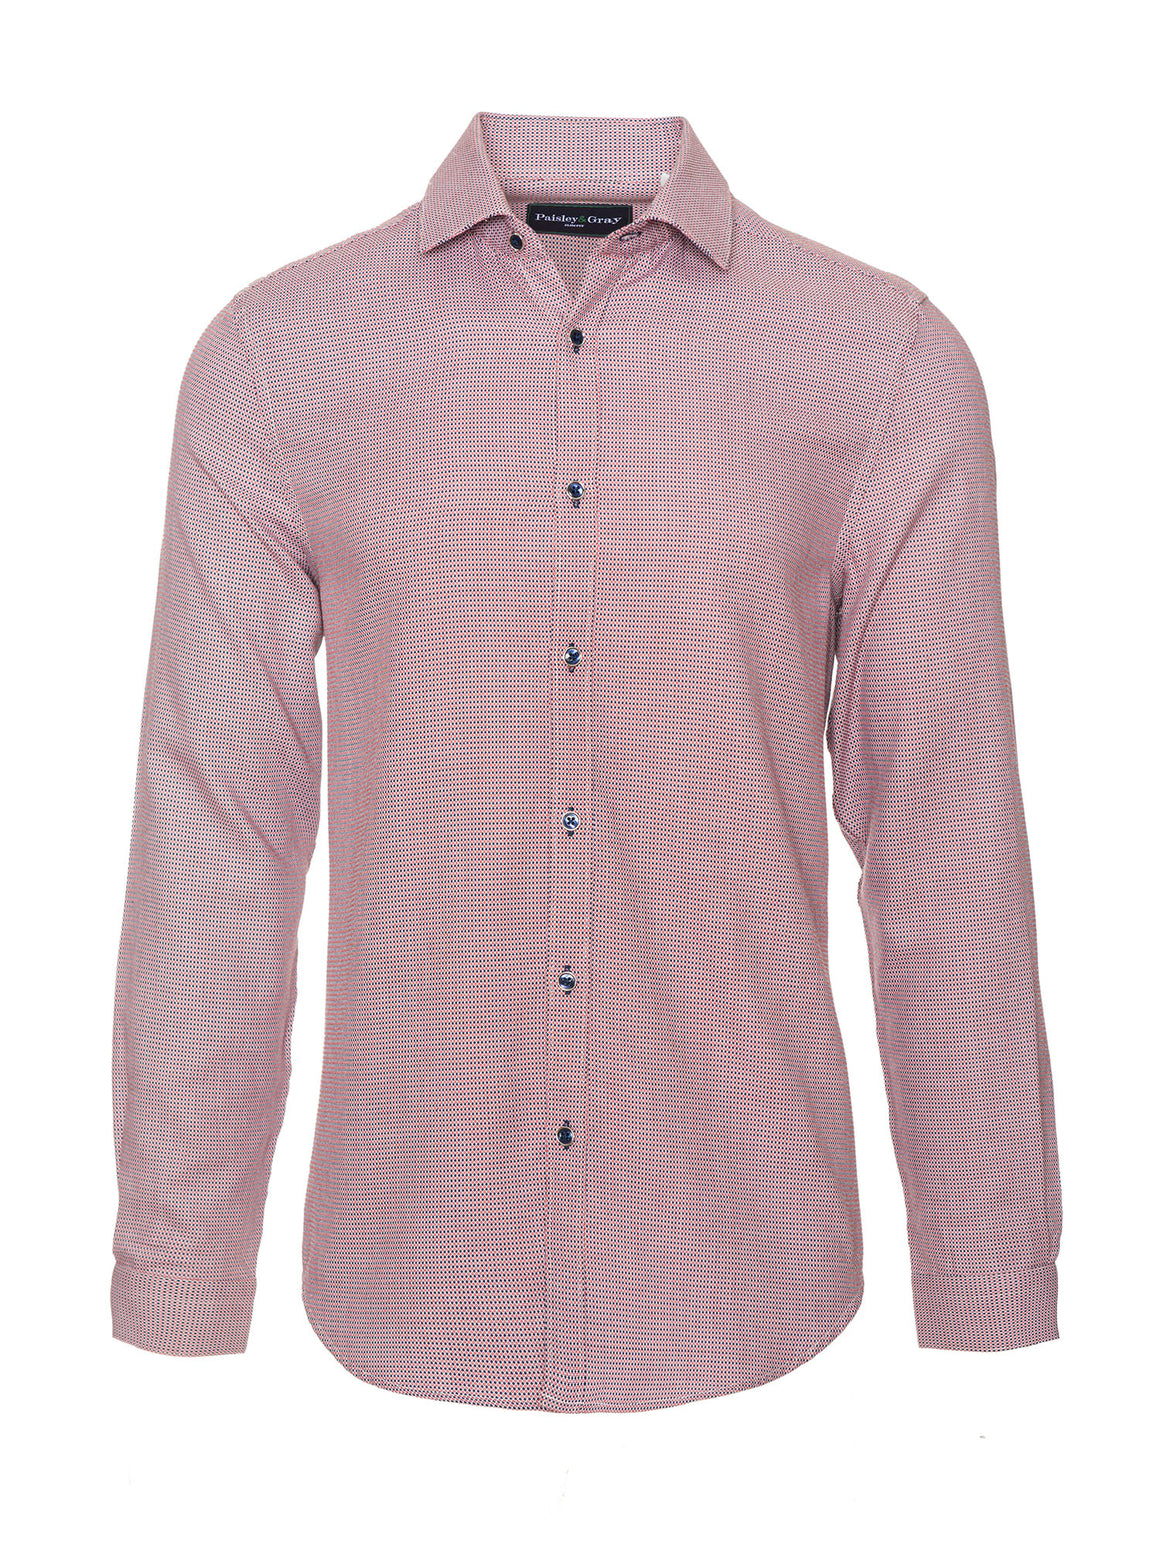 Slim Fit Shirt - Red, White & Navy